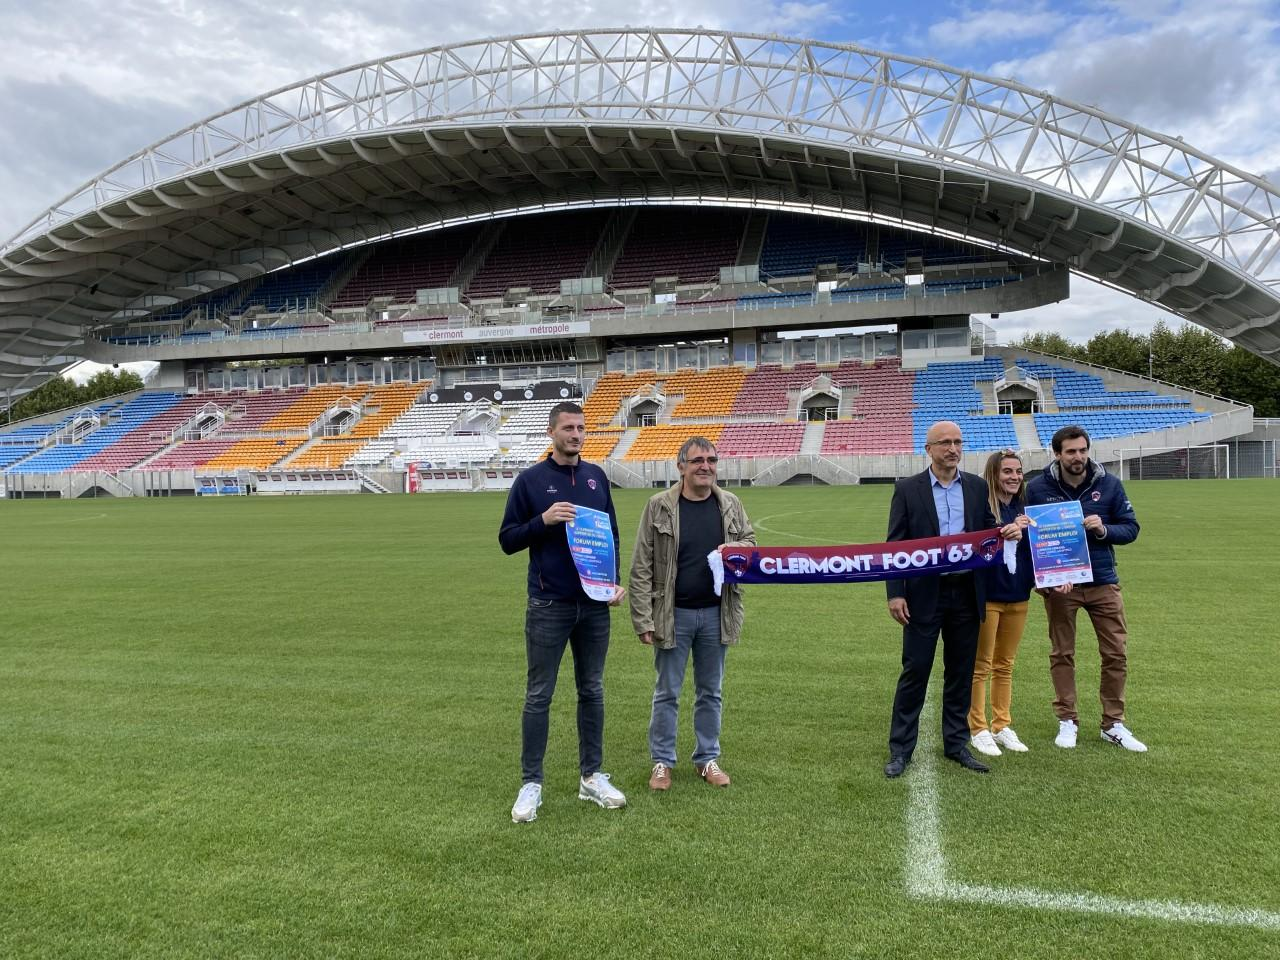 Clermont-Ferrand: employment discussion board organized on the Montpied stadium